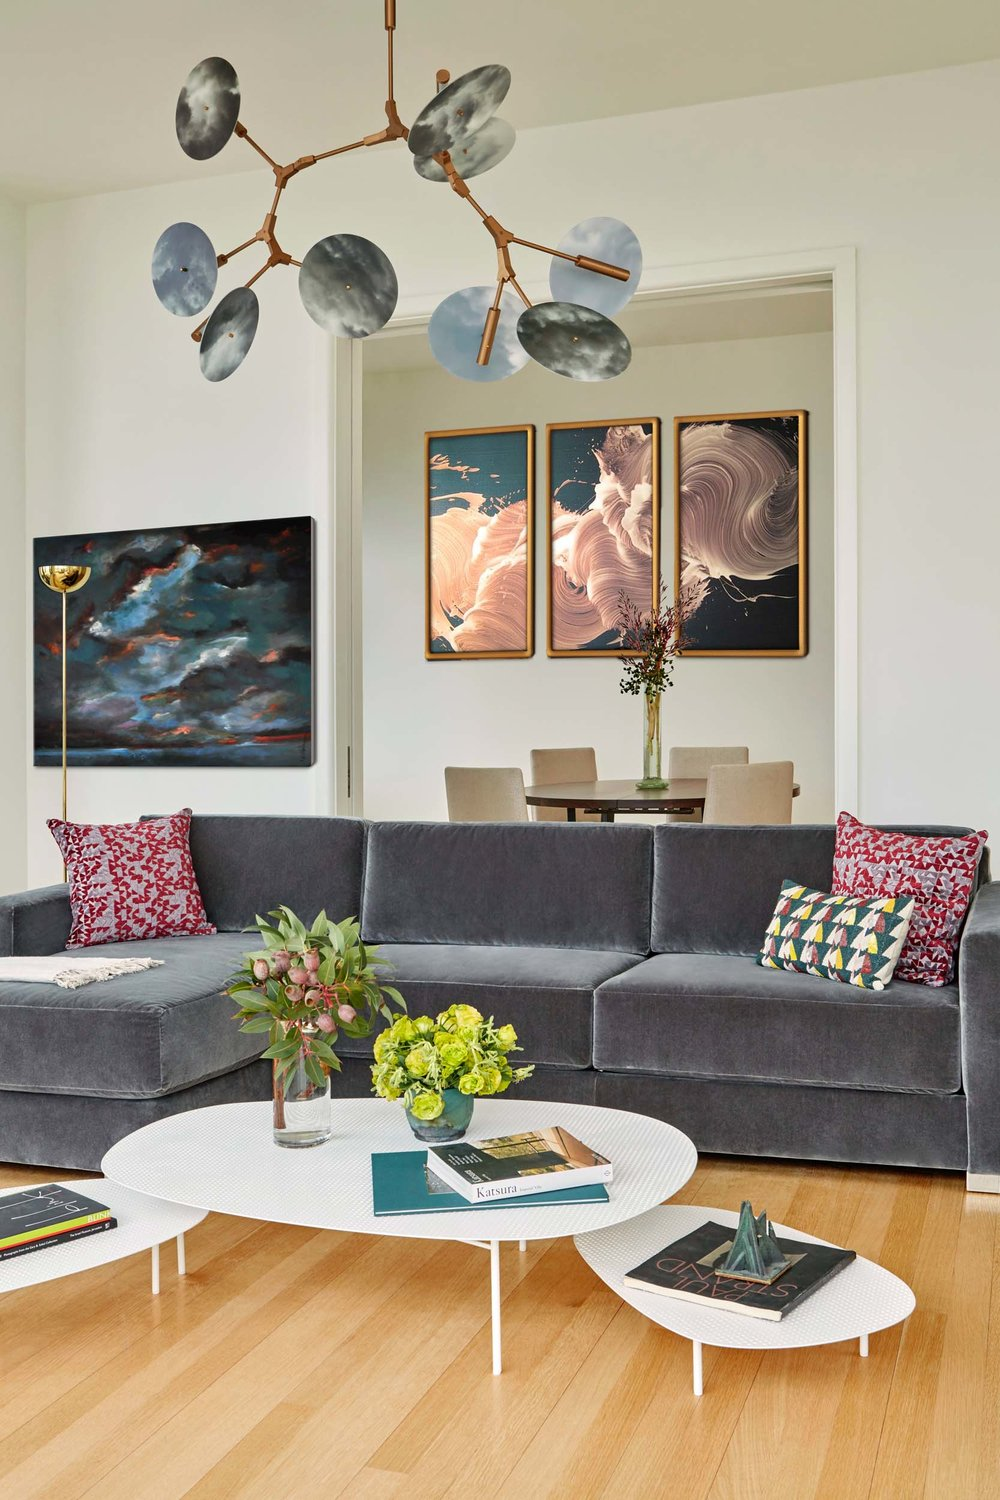 modern design living room with round table for four behind the large sofa,paintings hanging on the white painted wall and stylish decoration on the ceiling